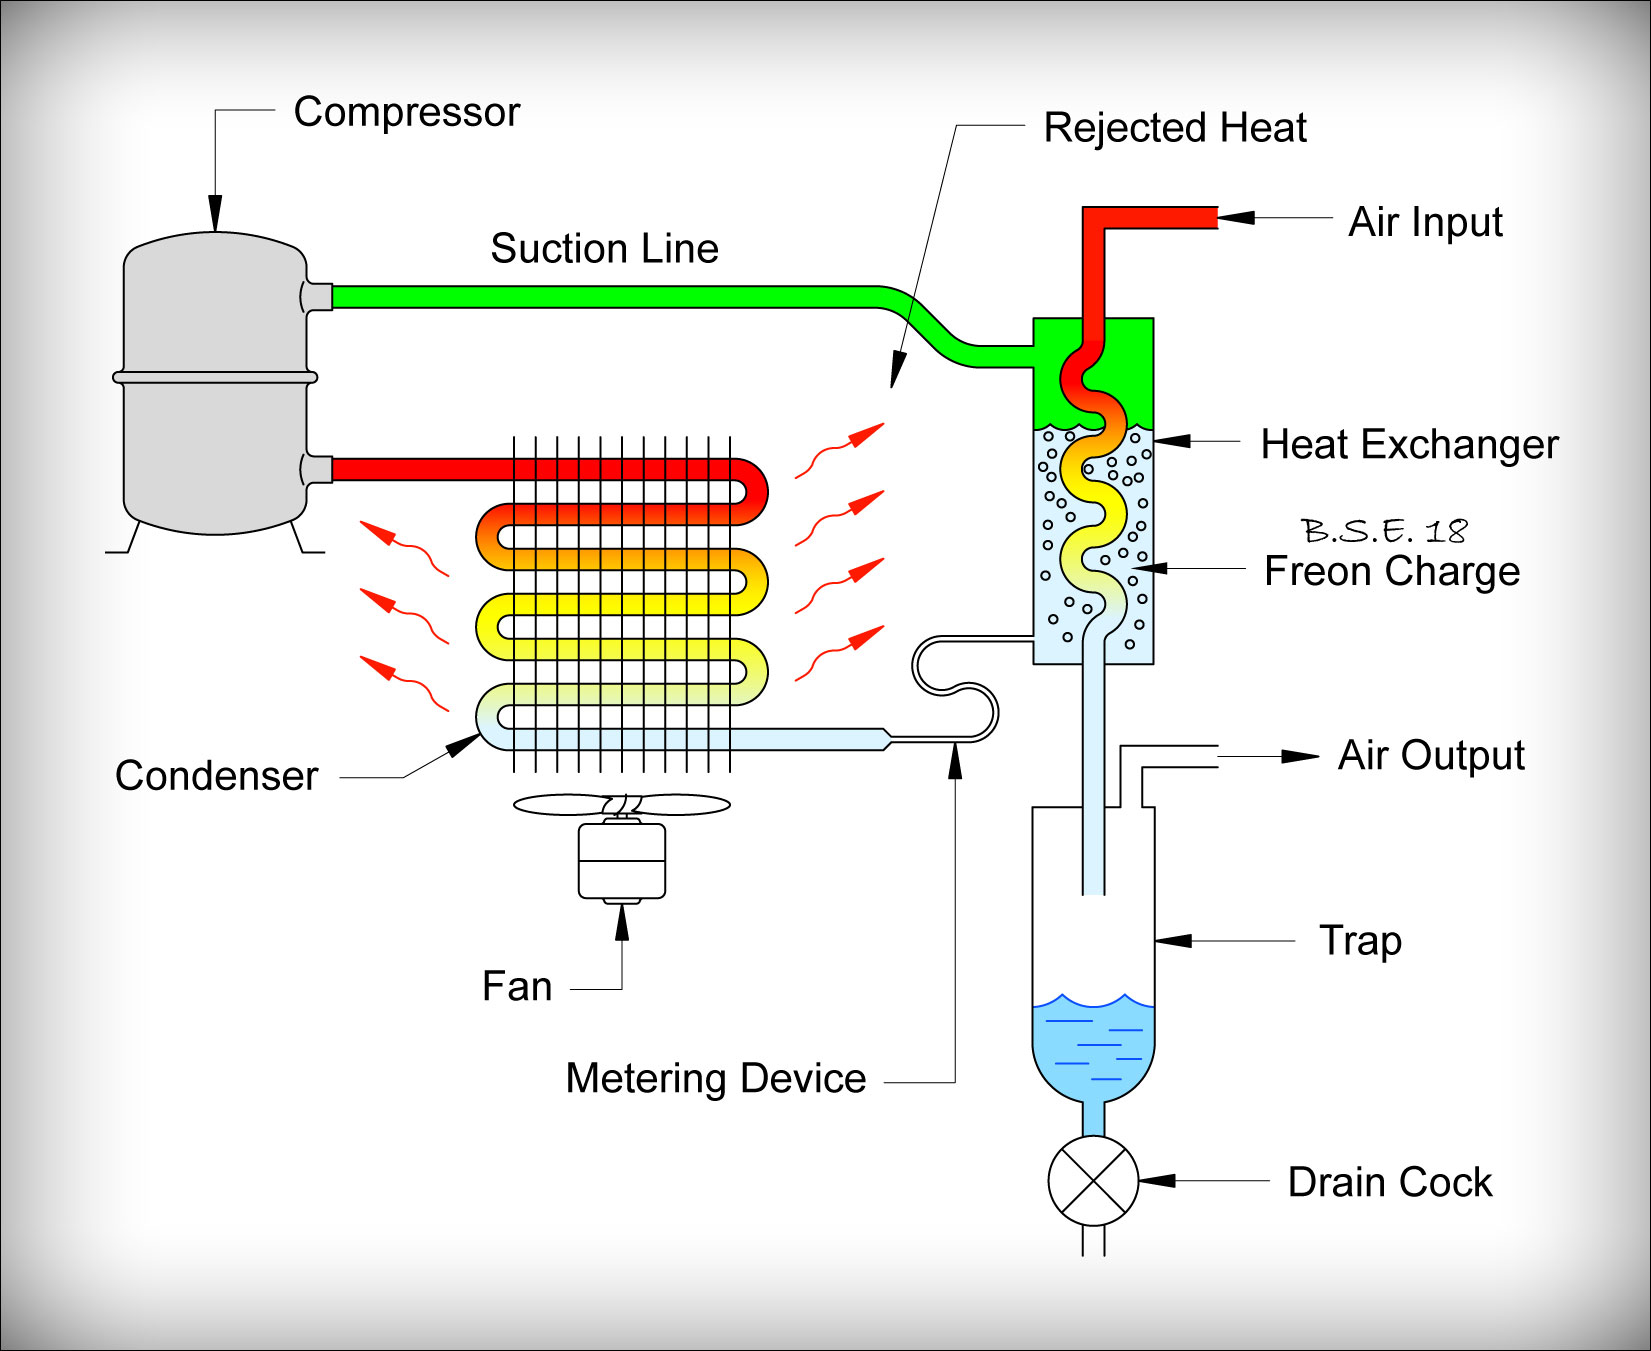 hight resolution of file dryer cfc dryer schematic jpg wikimedia commons air dryer troubleshooting pdf air dryer schematic